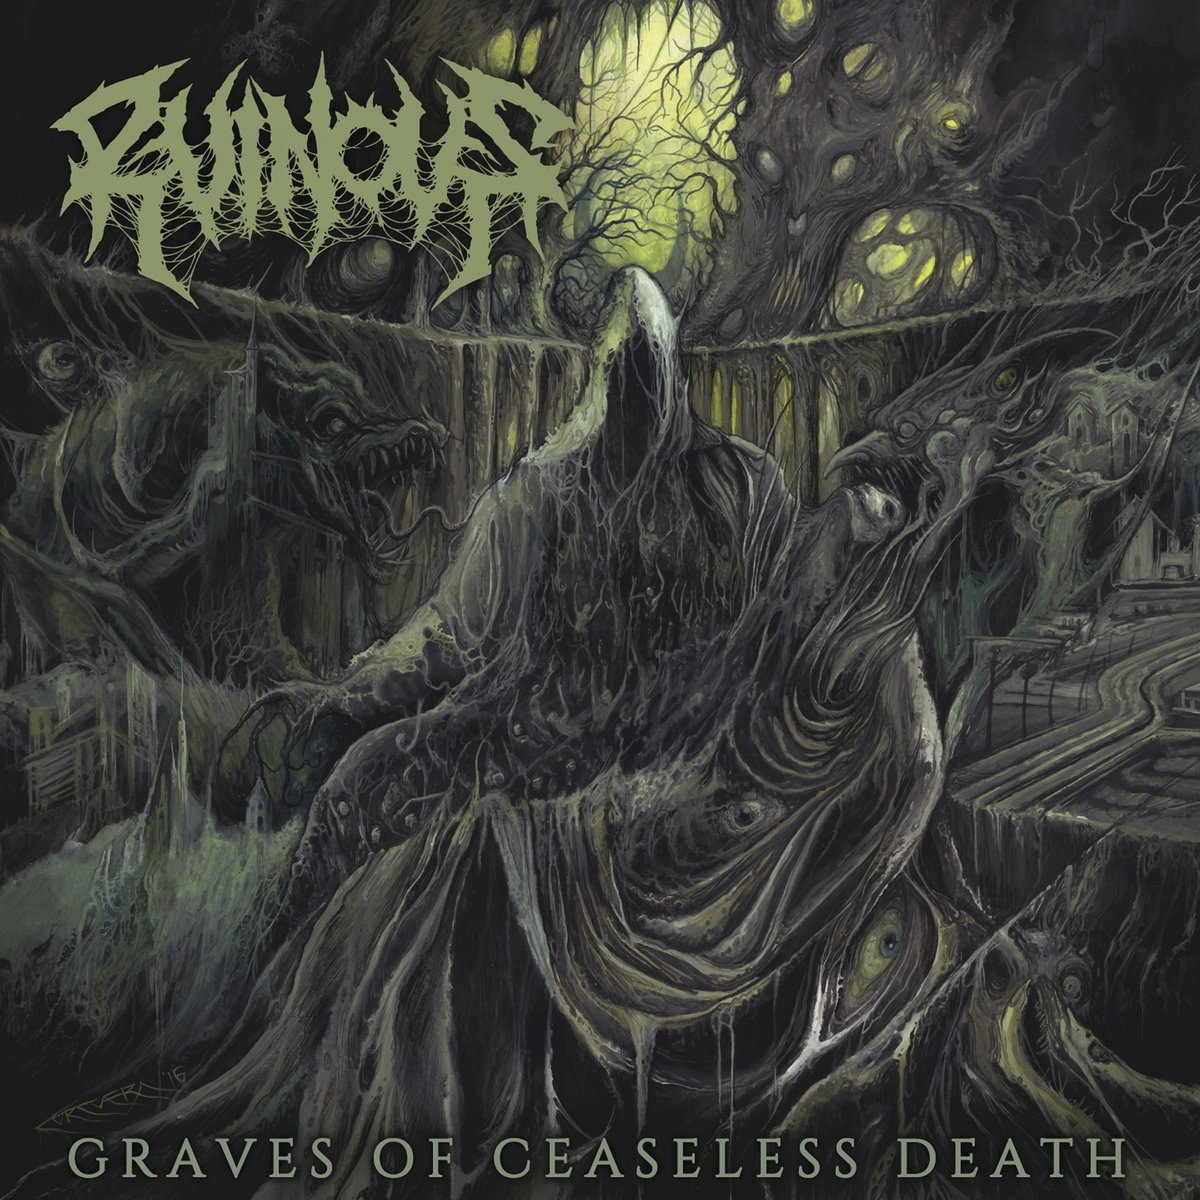 「RUINOUS / GRAVES OF CEASELESS DEATH」の画像検索結果